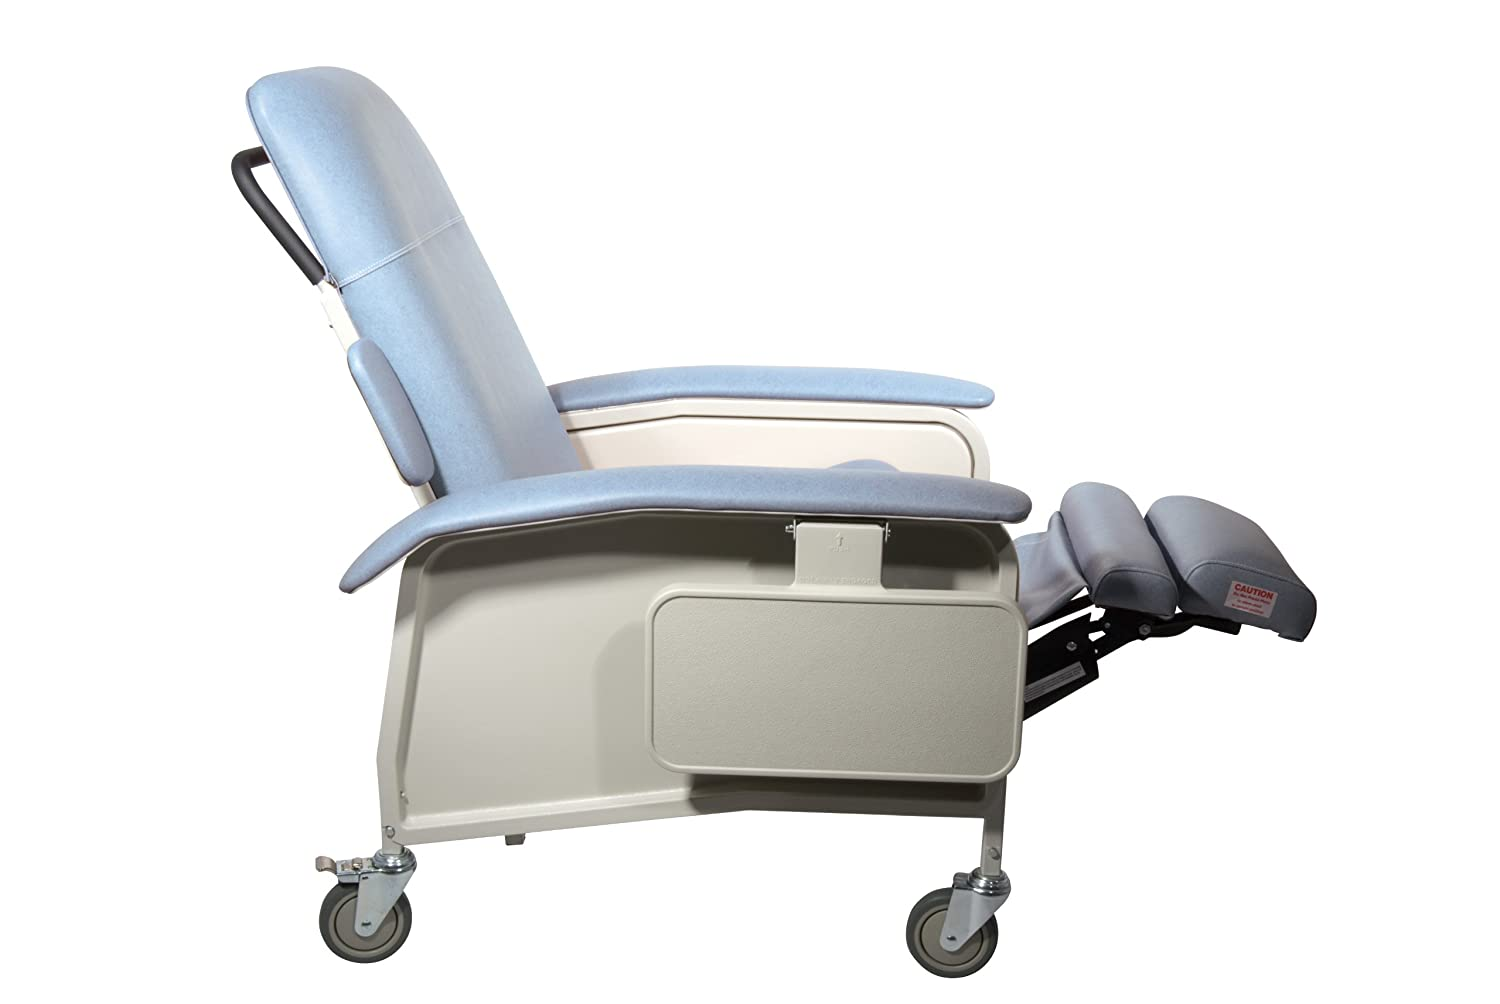 Amazon.com Drive Medical Clinical Care Geri Chair Recliner Blue Ridge Health u0026 Personal Care  sc 1 st  Amazon.com & Amazon.com: Drive Medical Clinical Care Geri Chair Recliner Blue ... islam-shia.org